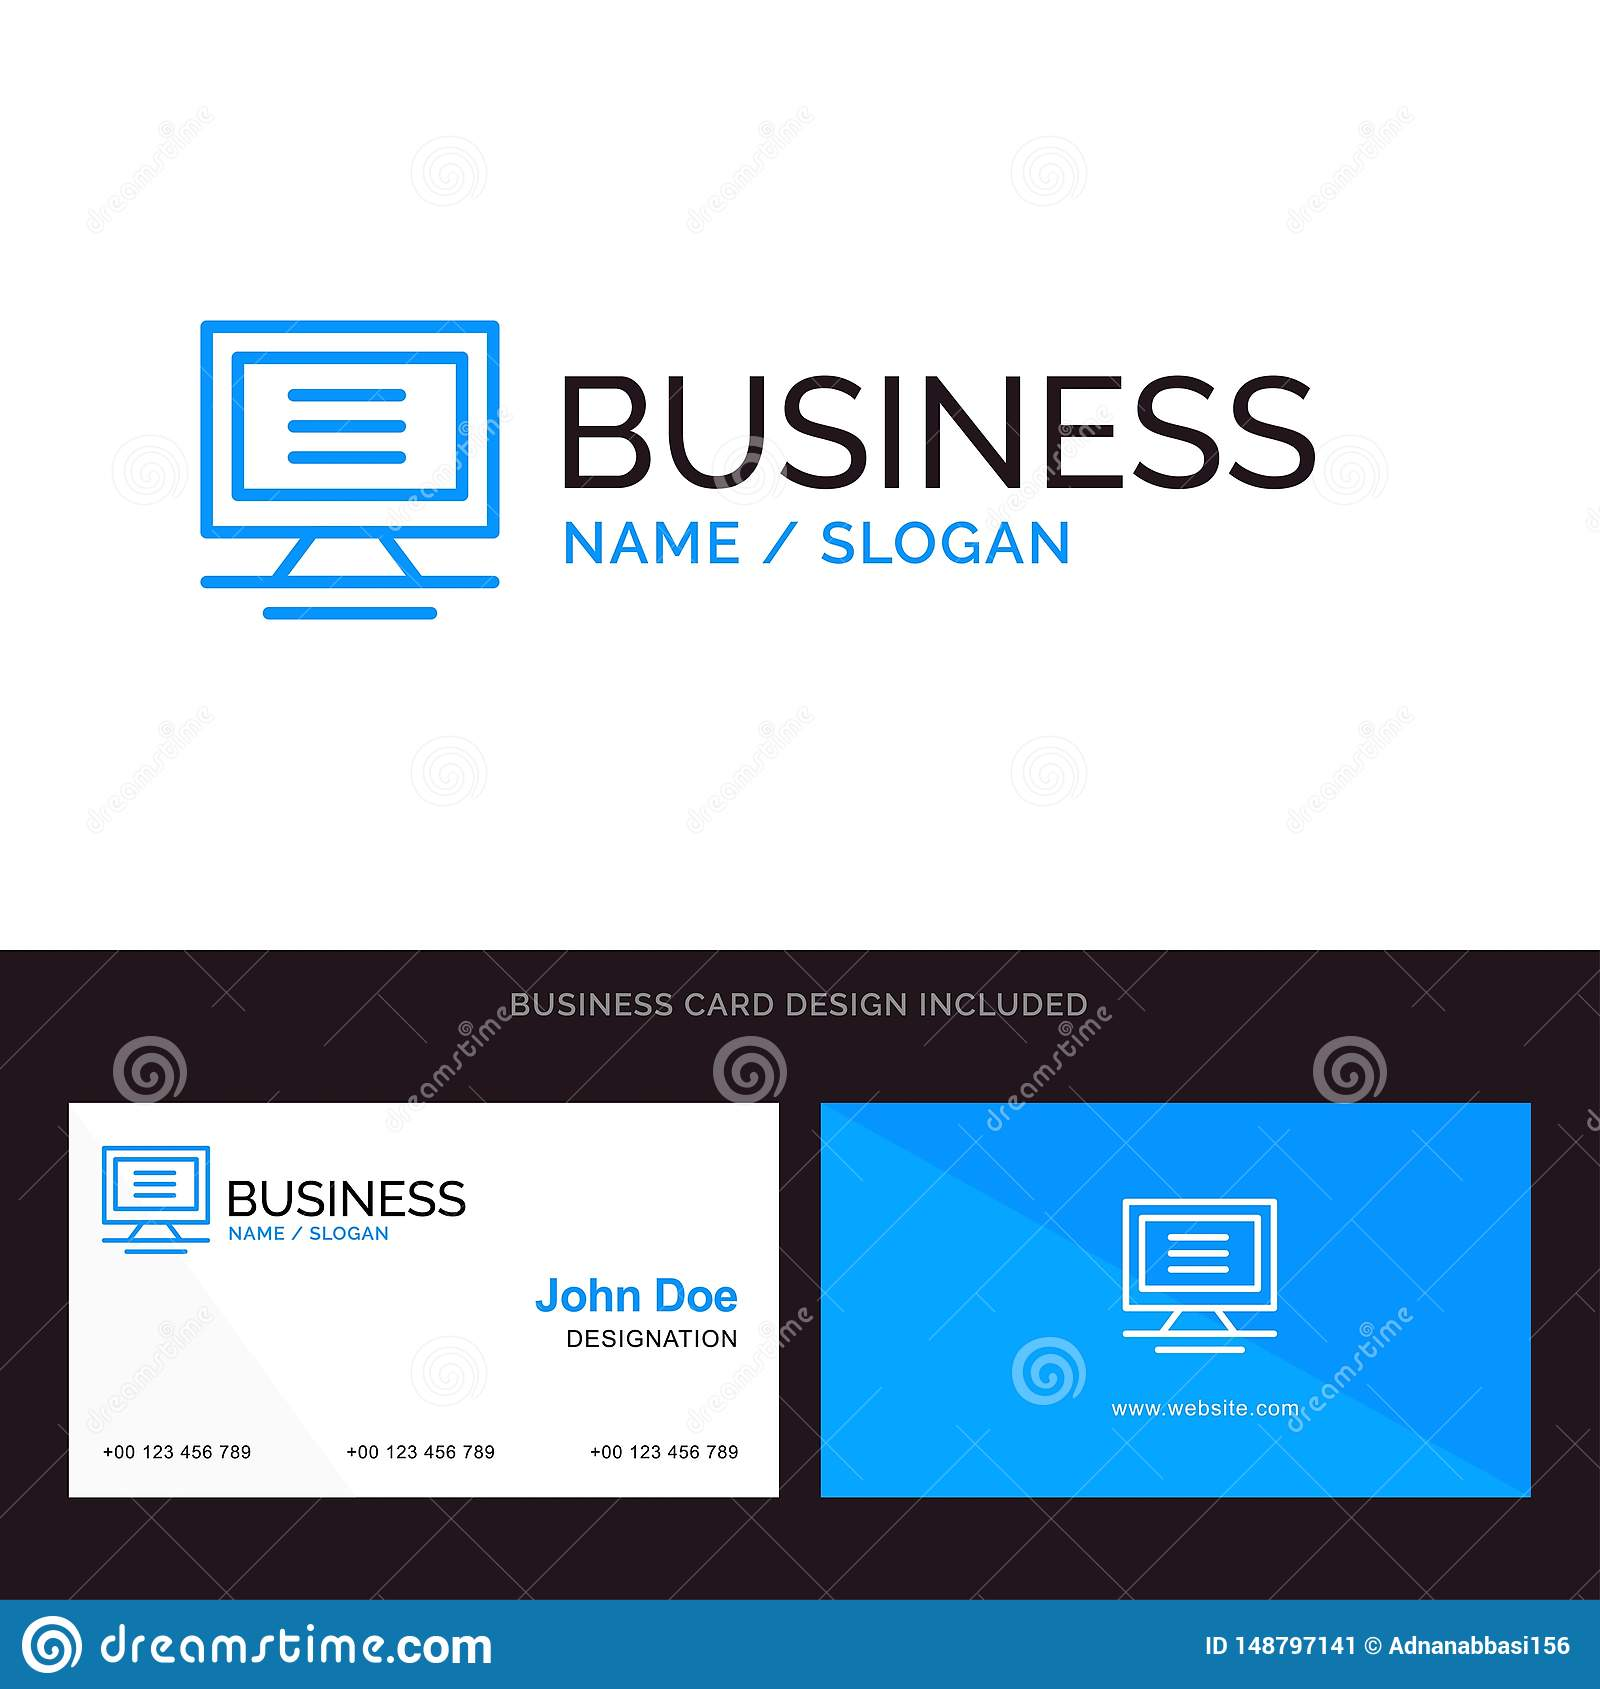 Monitor, Computer, Hardware Blue Business logo and Business Card Template. Front and Back Design